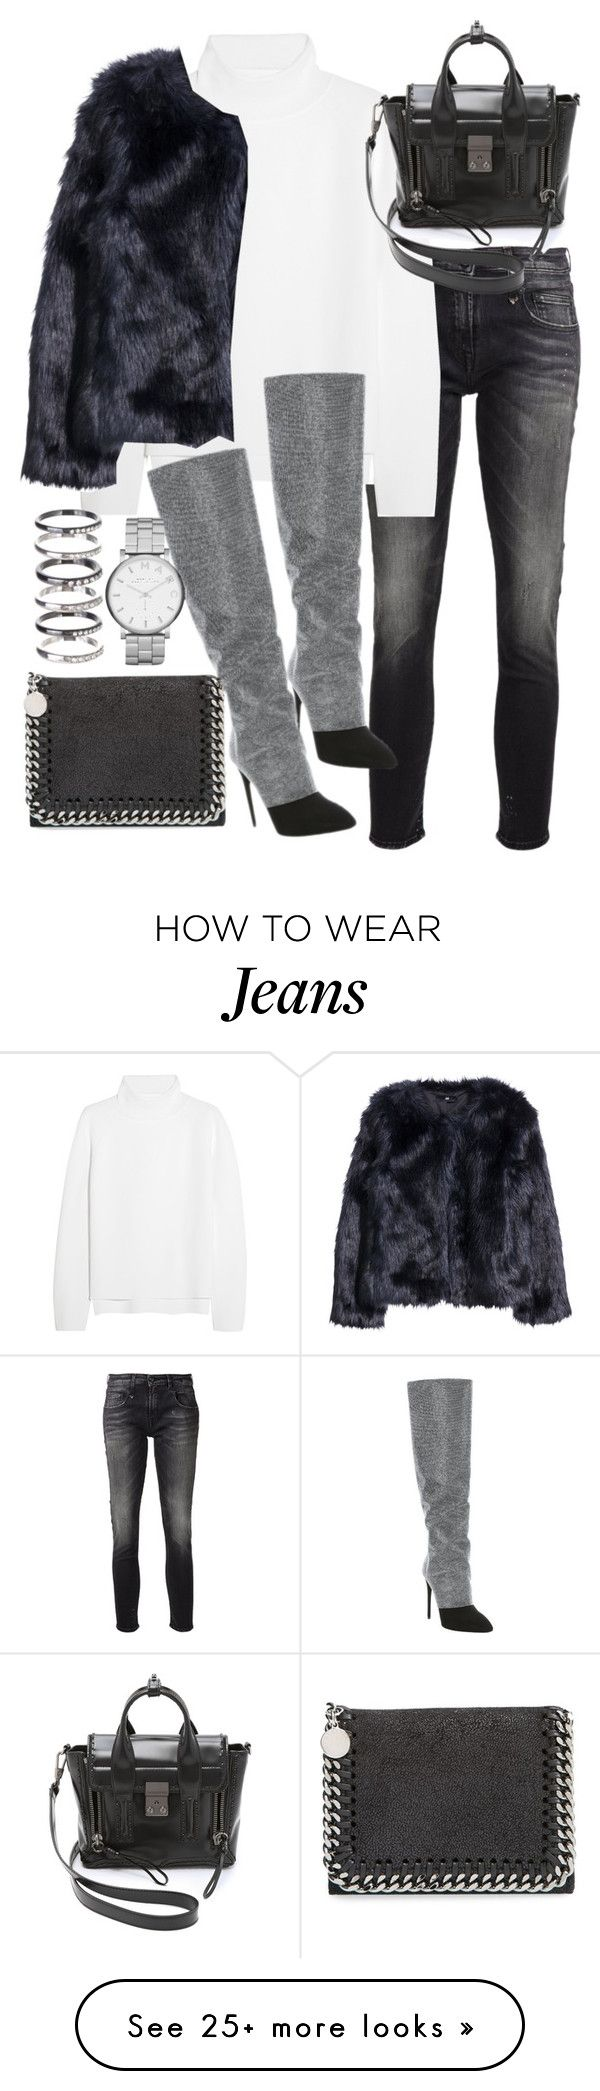 """""""Untitled #19302"""" by florencia95 on Polyvore featuring R13, Vanessa Bruno, 3.1 Phillip Lim, H&M, Giuseppe Zanotti, STELLA McCARTNEY, M.N.G and Marc by Marc Jacobs"""